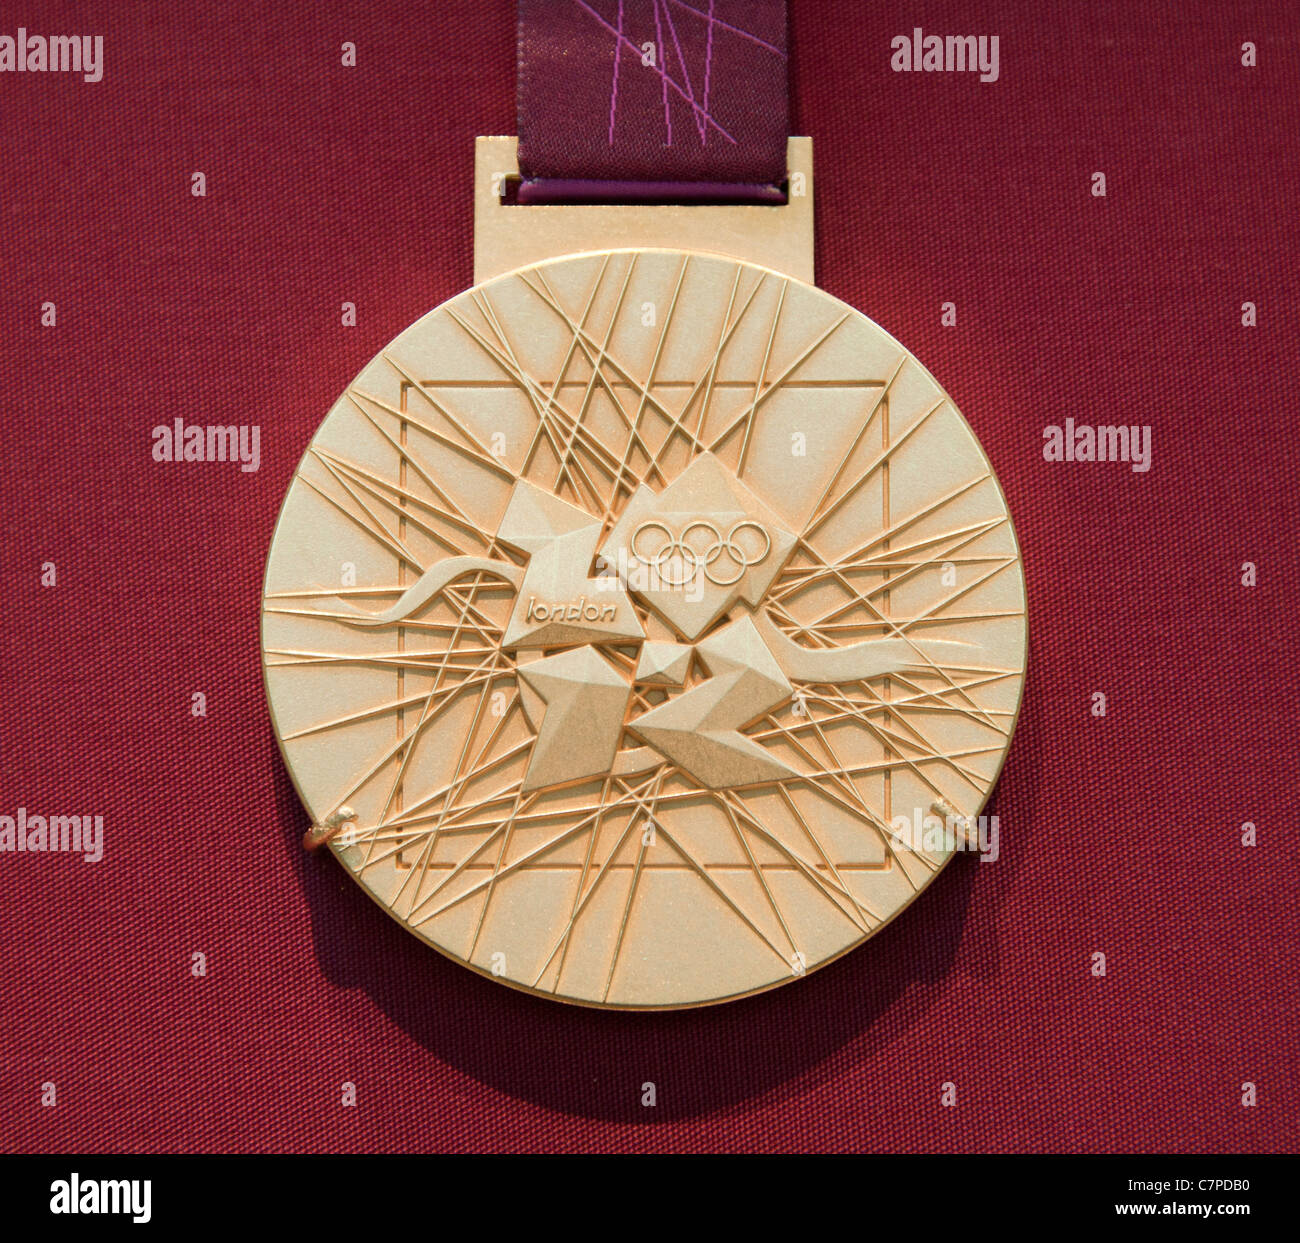 The rear view of the 2012 Olympic Games Gold Medal on display in the British Museum in London - Stock Image